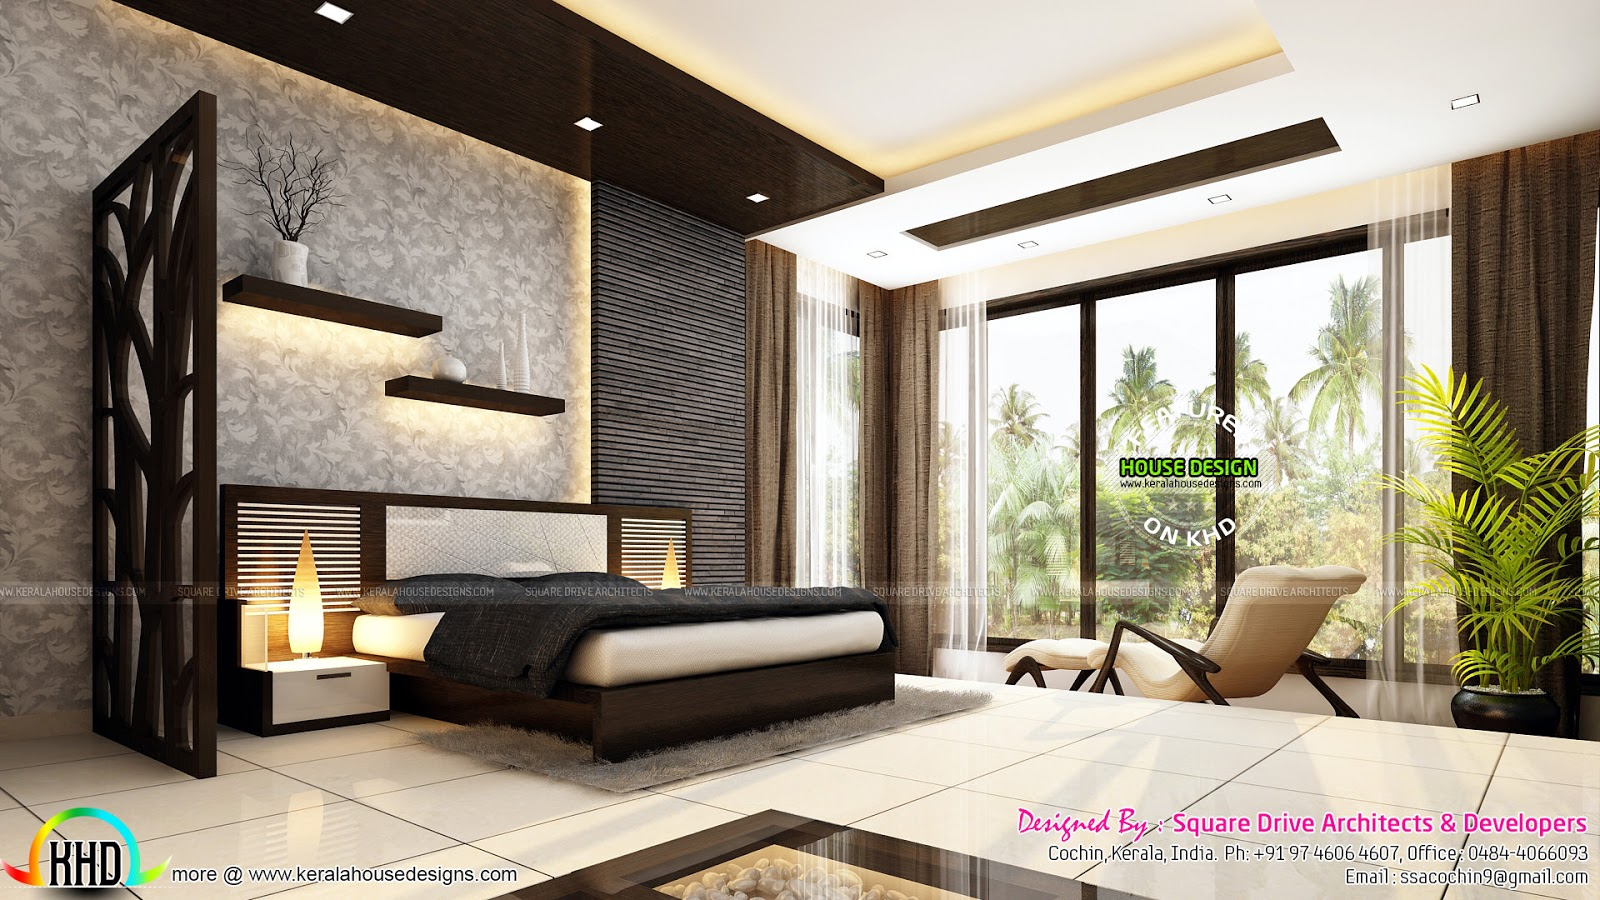 Very beautiful modern interior designs kerala home for Beautiful bedroom interior